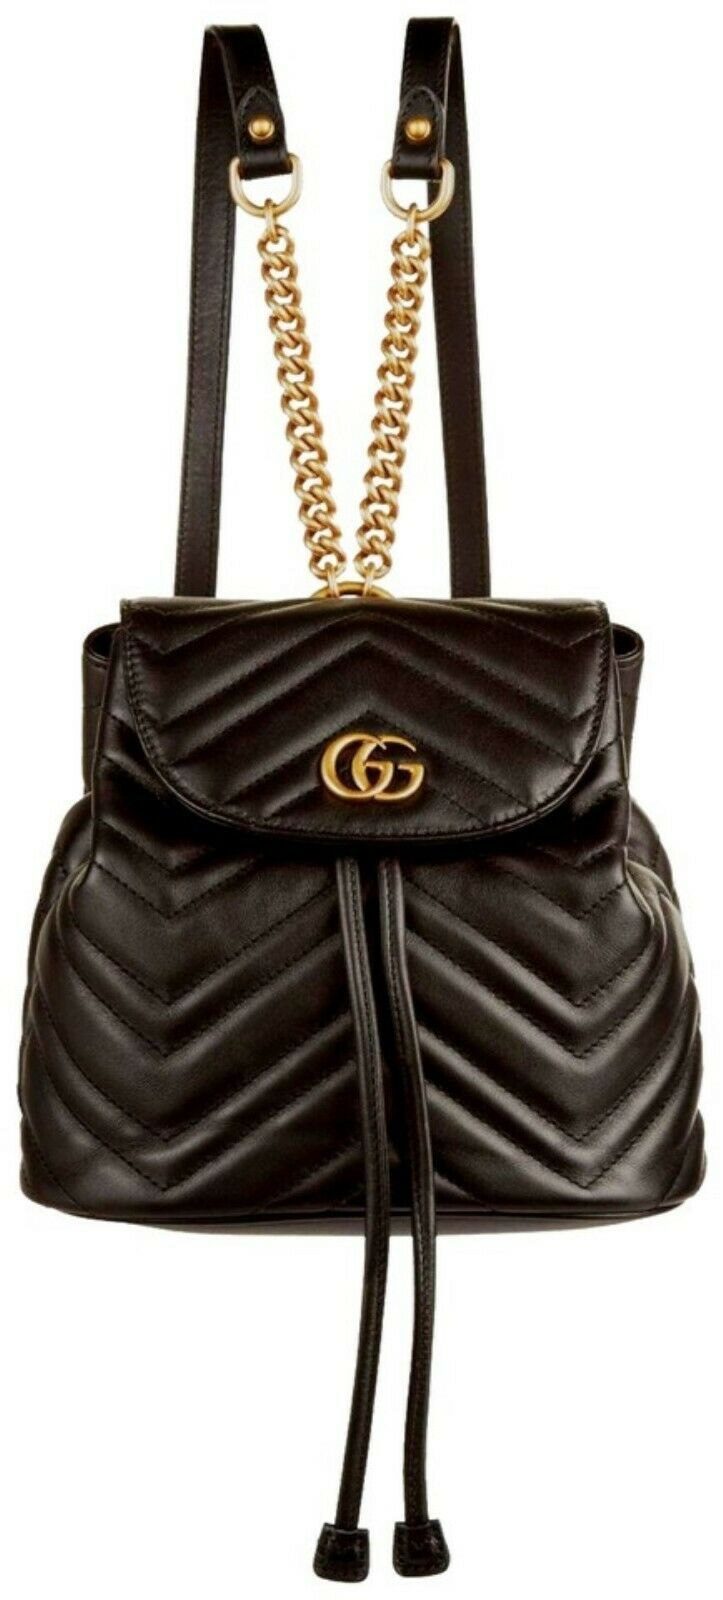 04bac5324e8 NWT Gucci GG Marmont black leather small backpack bag   Rtl  1980 -   1